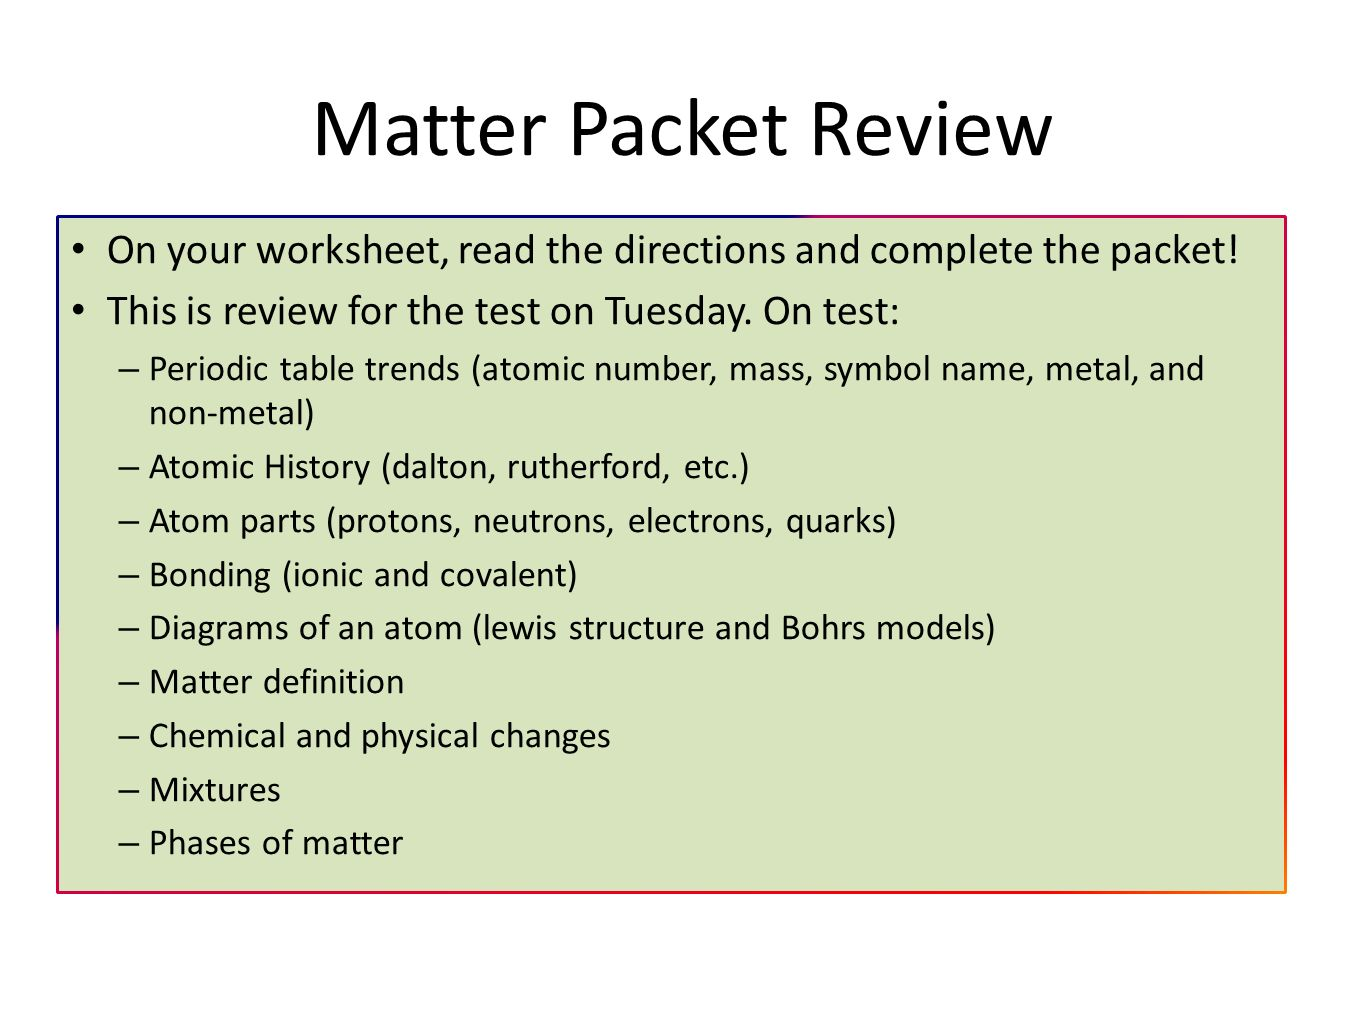 Today in is week 7 quarter 2 1125 1128 calendar site matter packet review on your worksheet read the directions and complete the packet this robcynllc Image collections